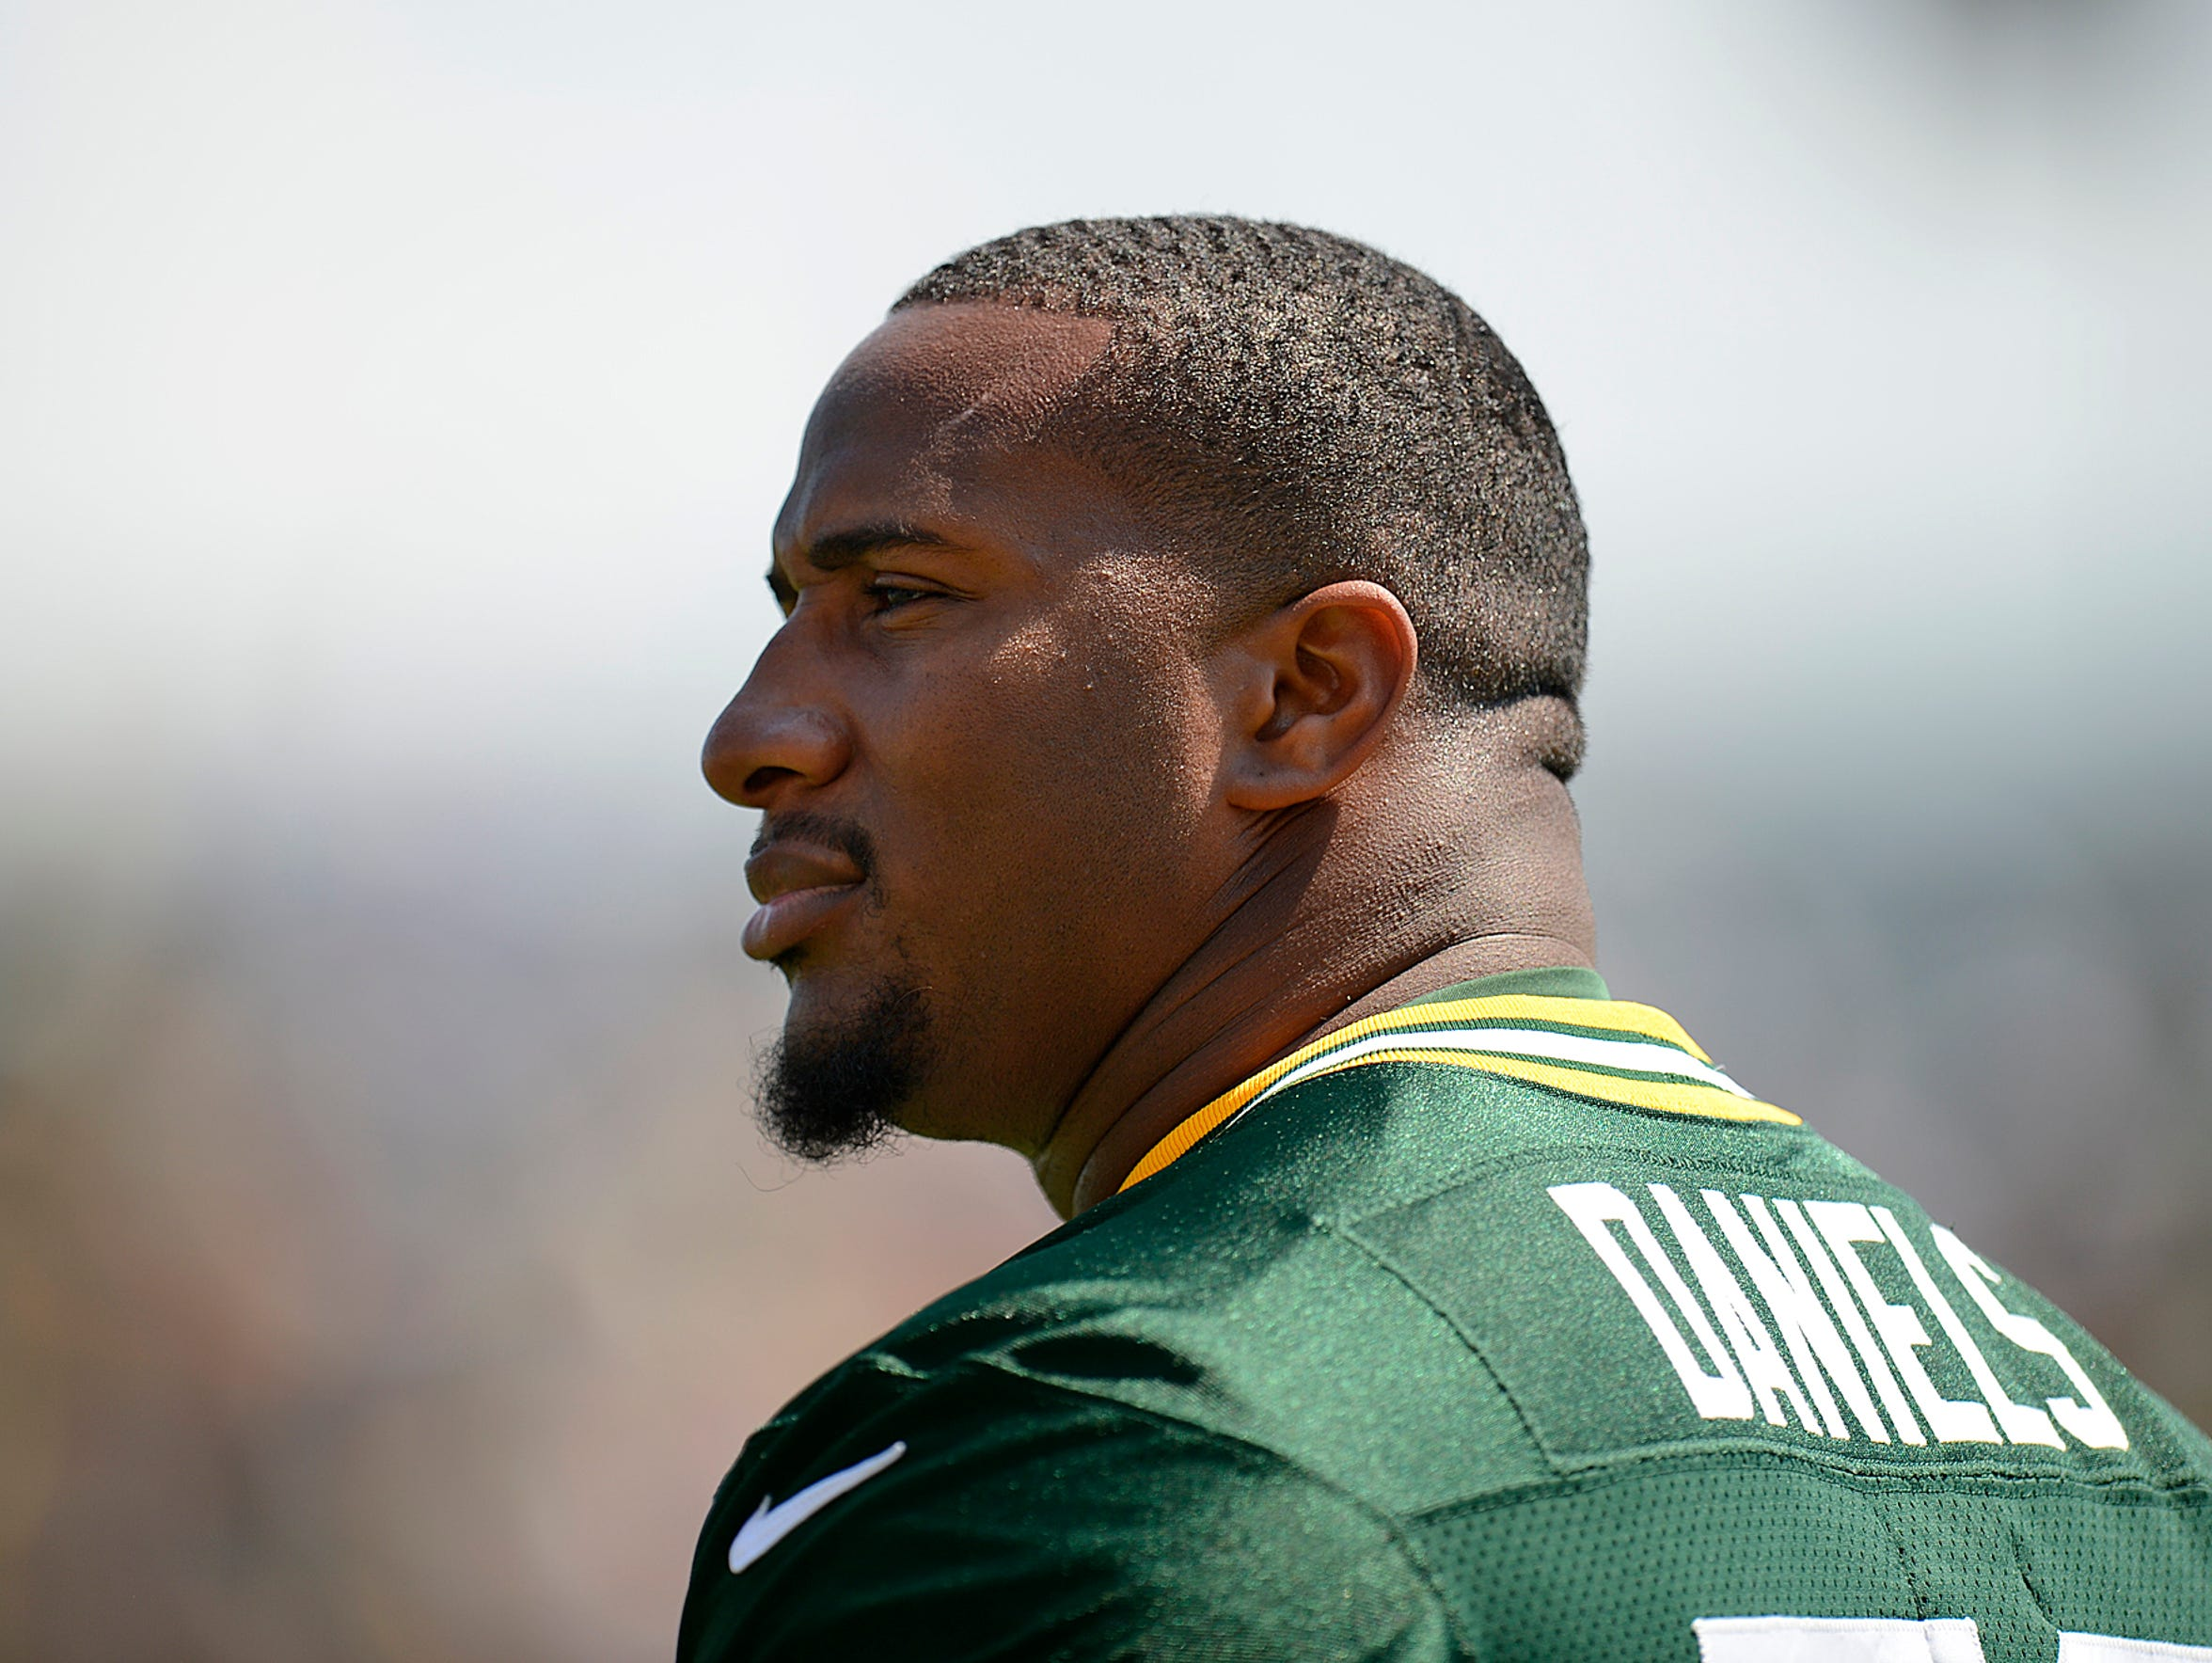 Green Bay Packers defensive tackle Mike Daniels looks